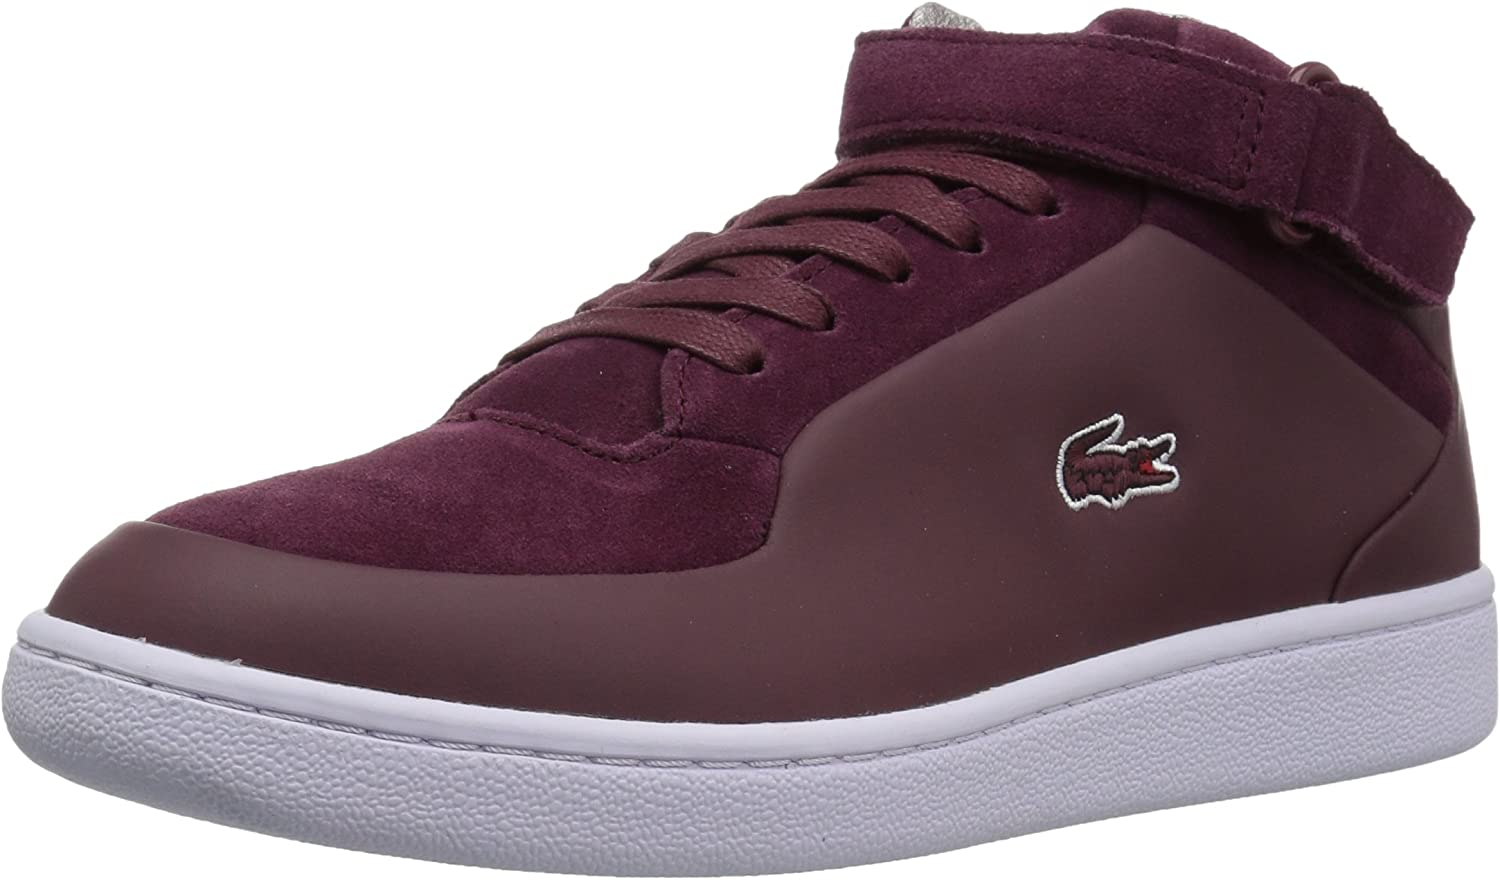 Lacoste Men's Turbo 417 5 Sneaker